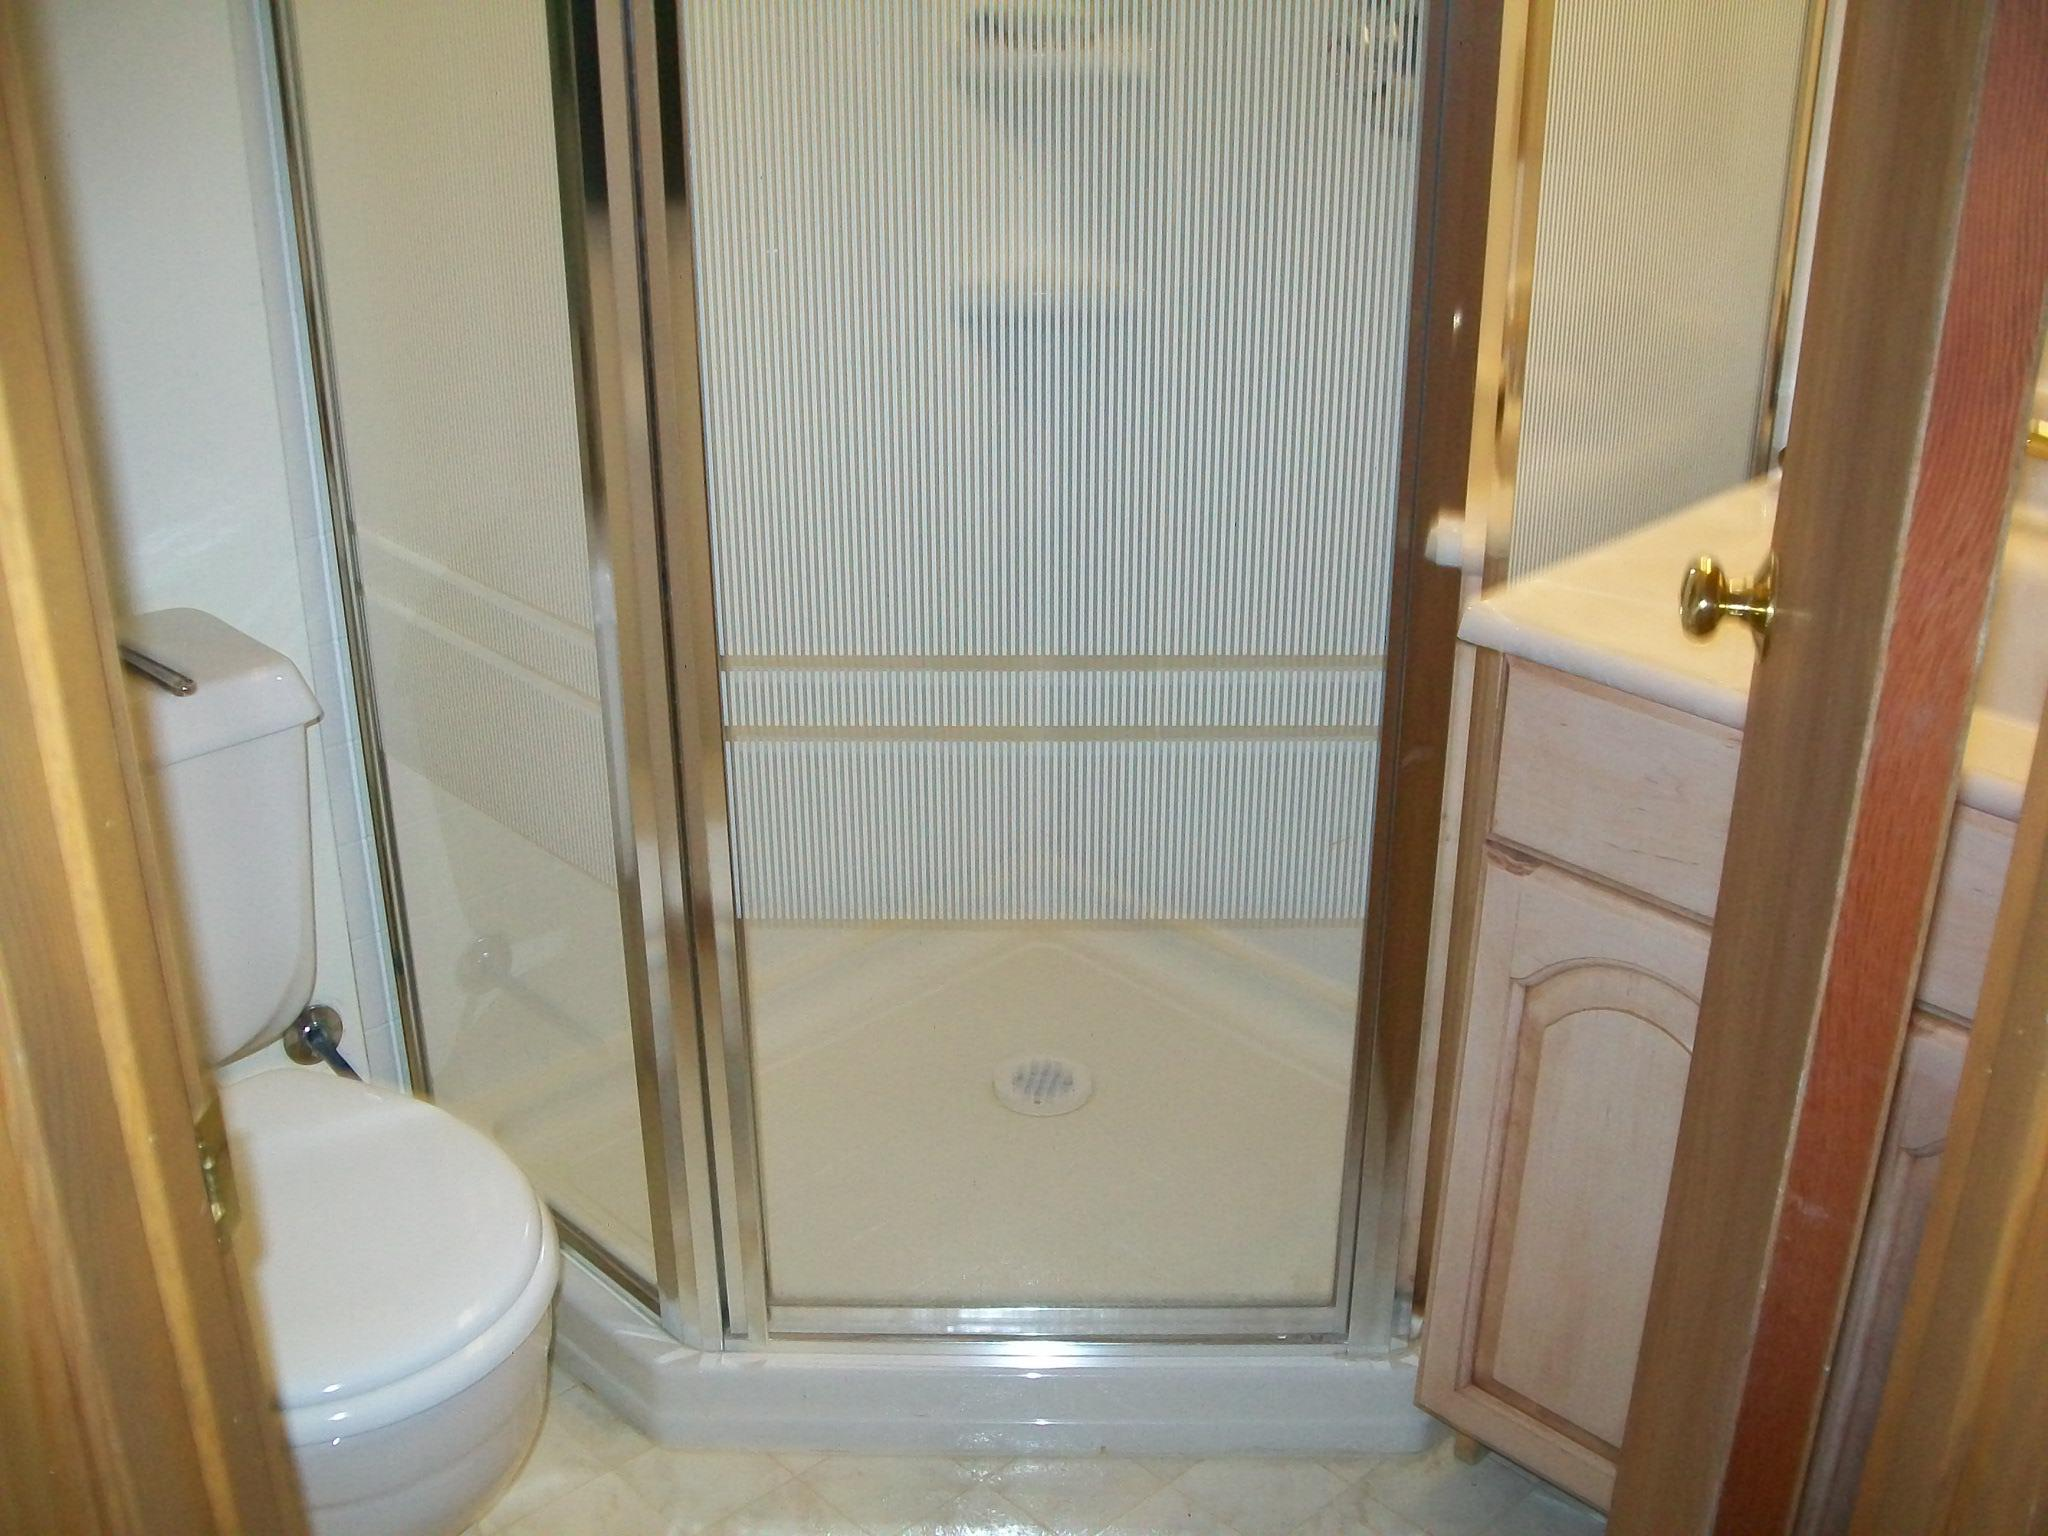 The shower is leaking under the flooring in the bathroom.